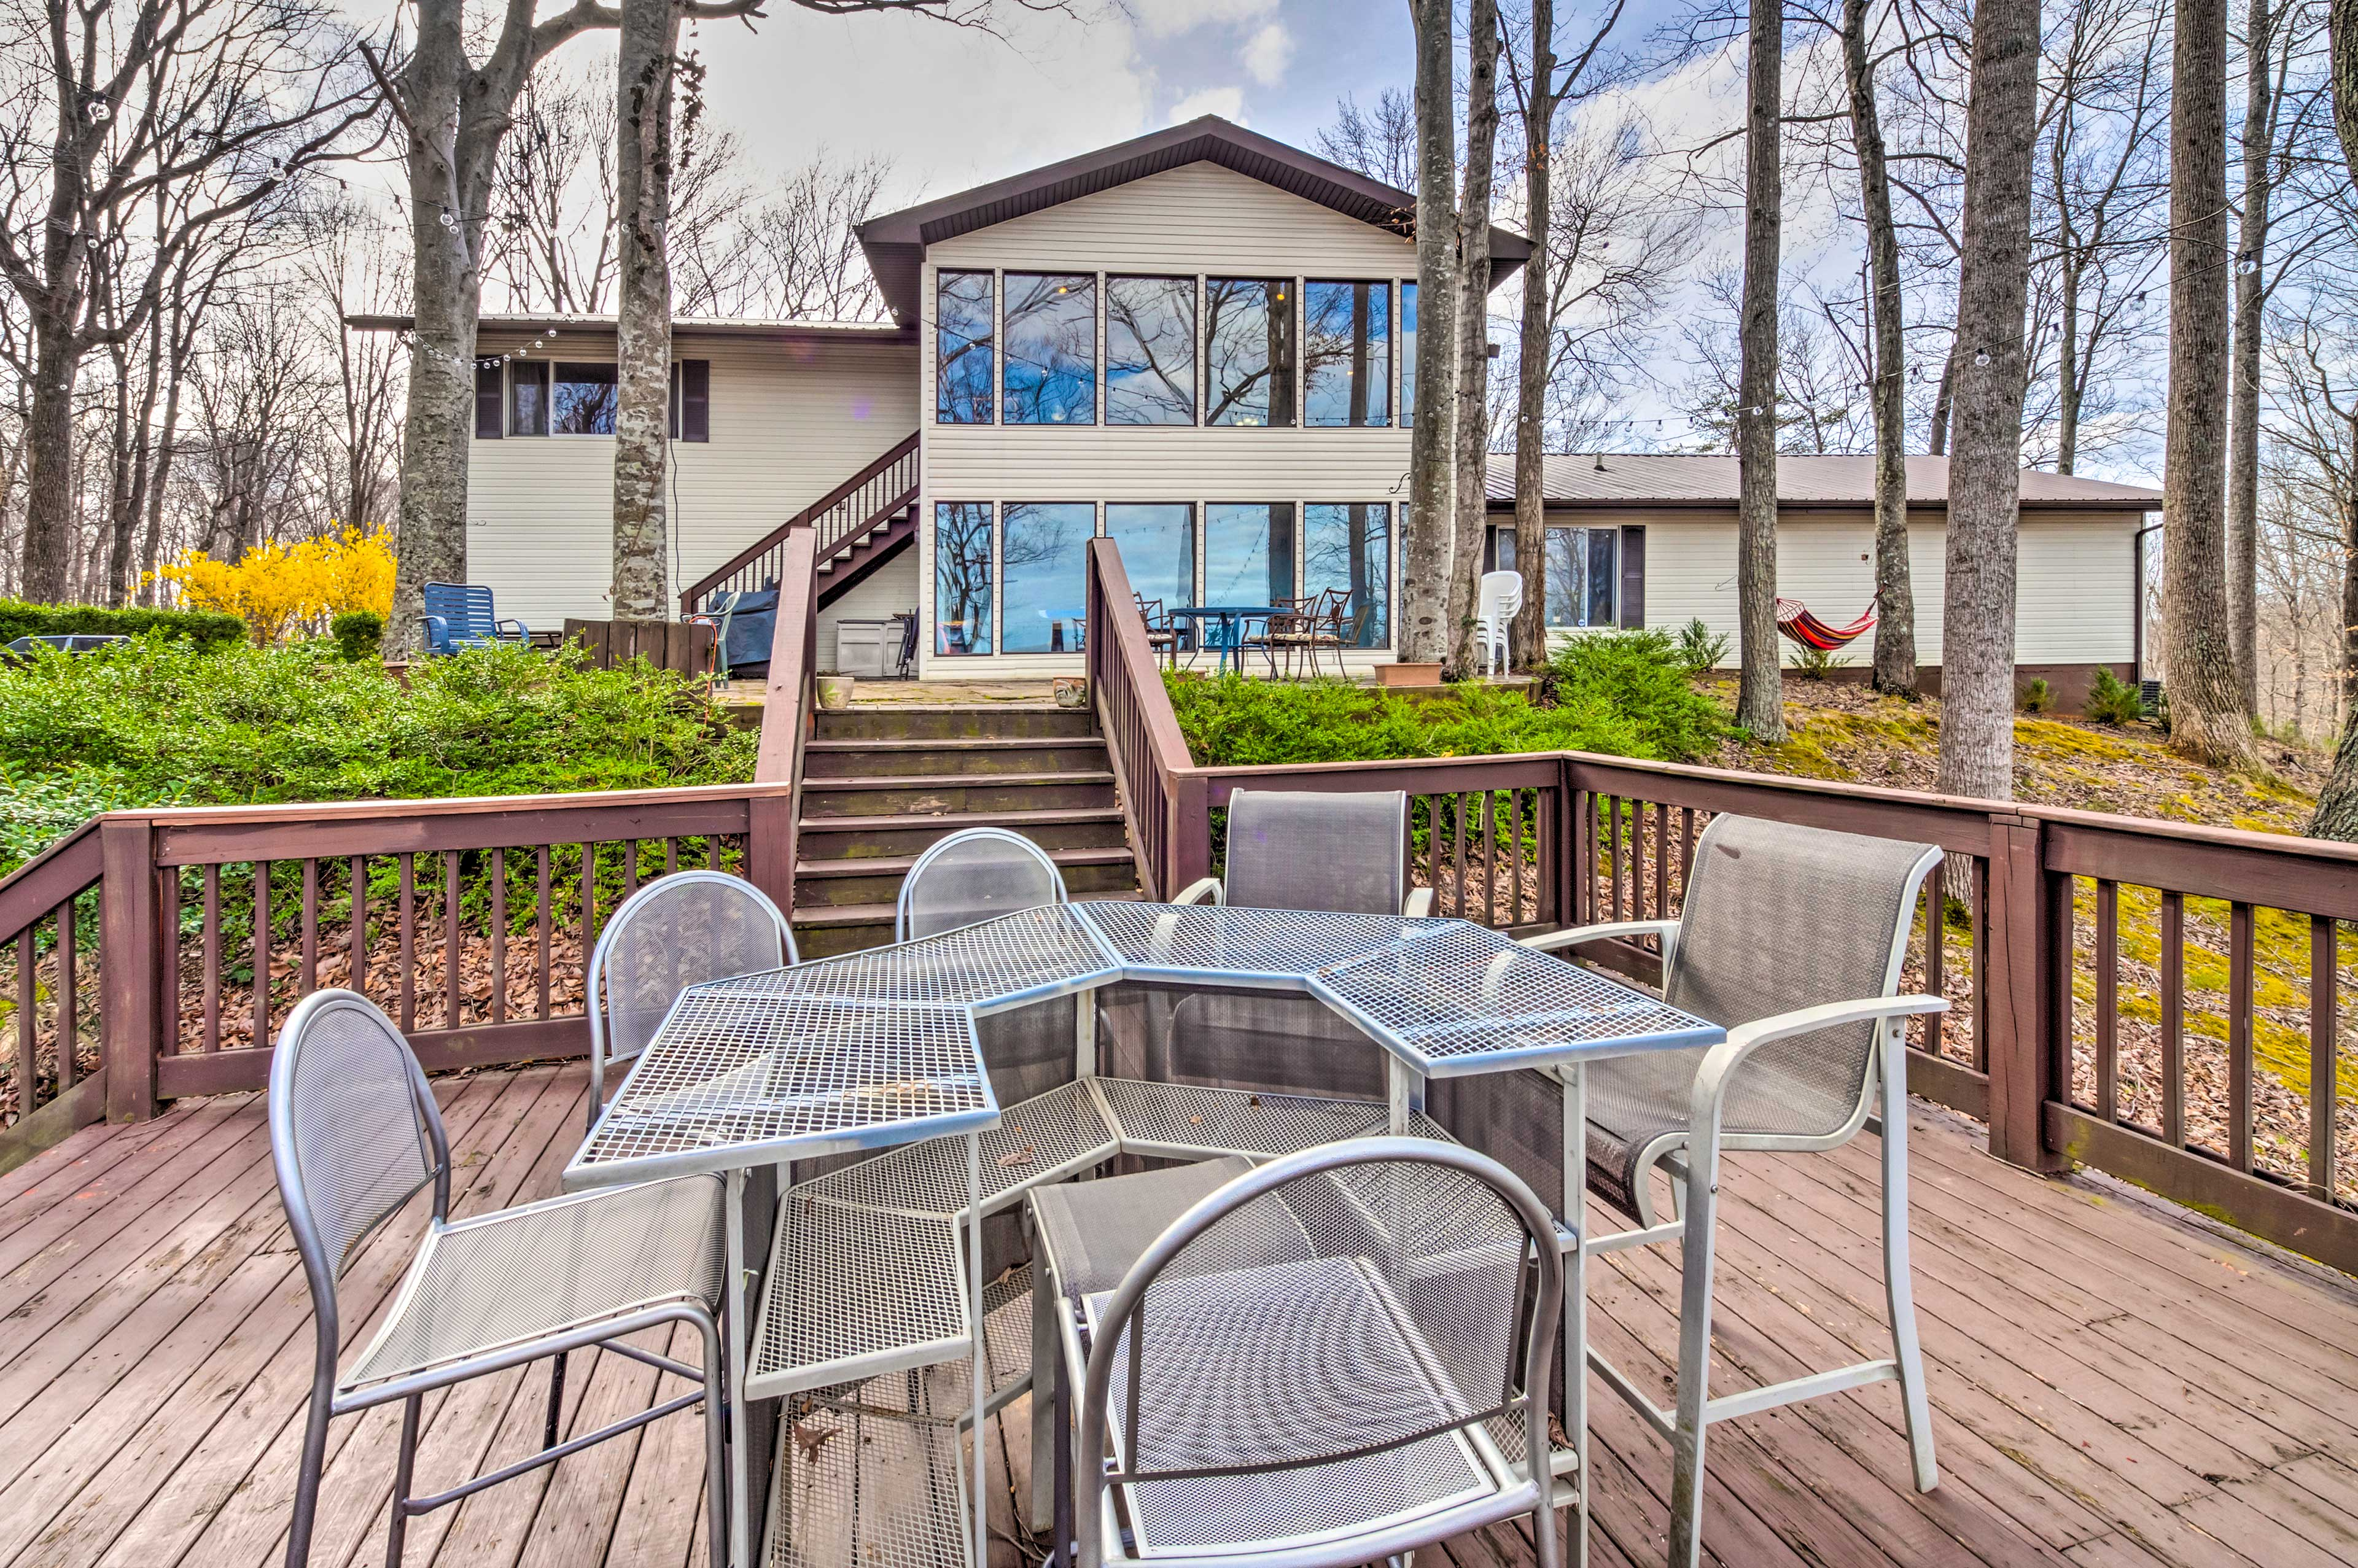 Monticello Vacation Rental Home   5BR   3.5BA   3,800 Sq Ft   Steps Required